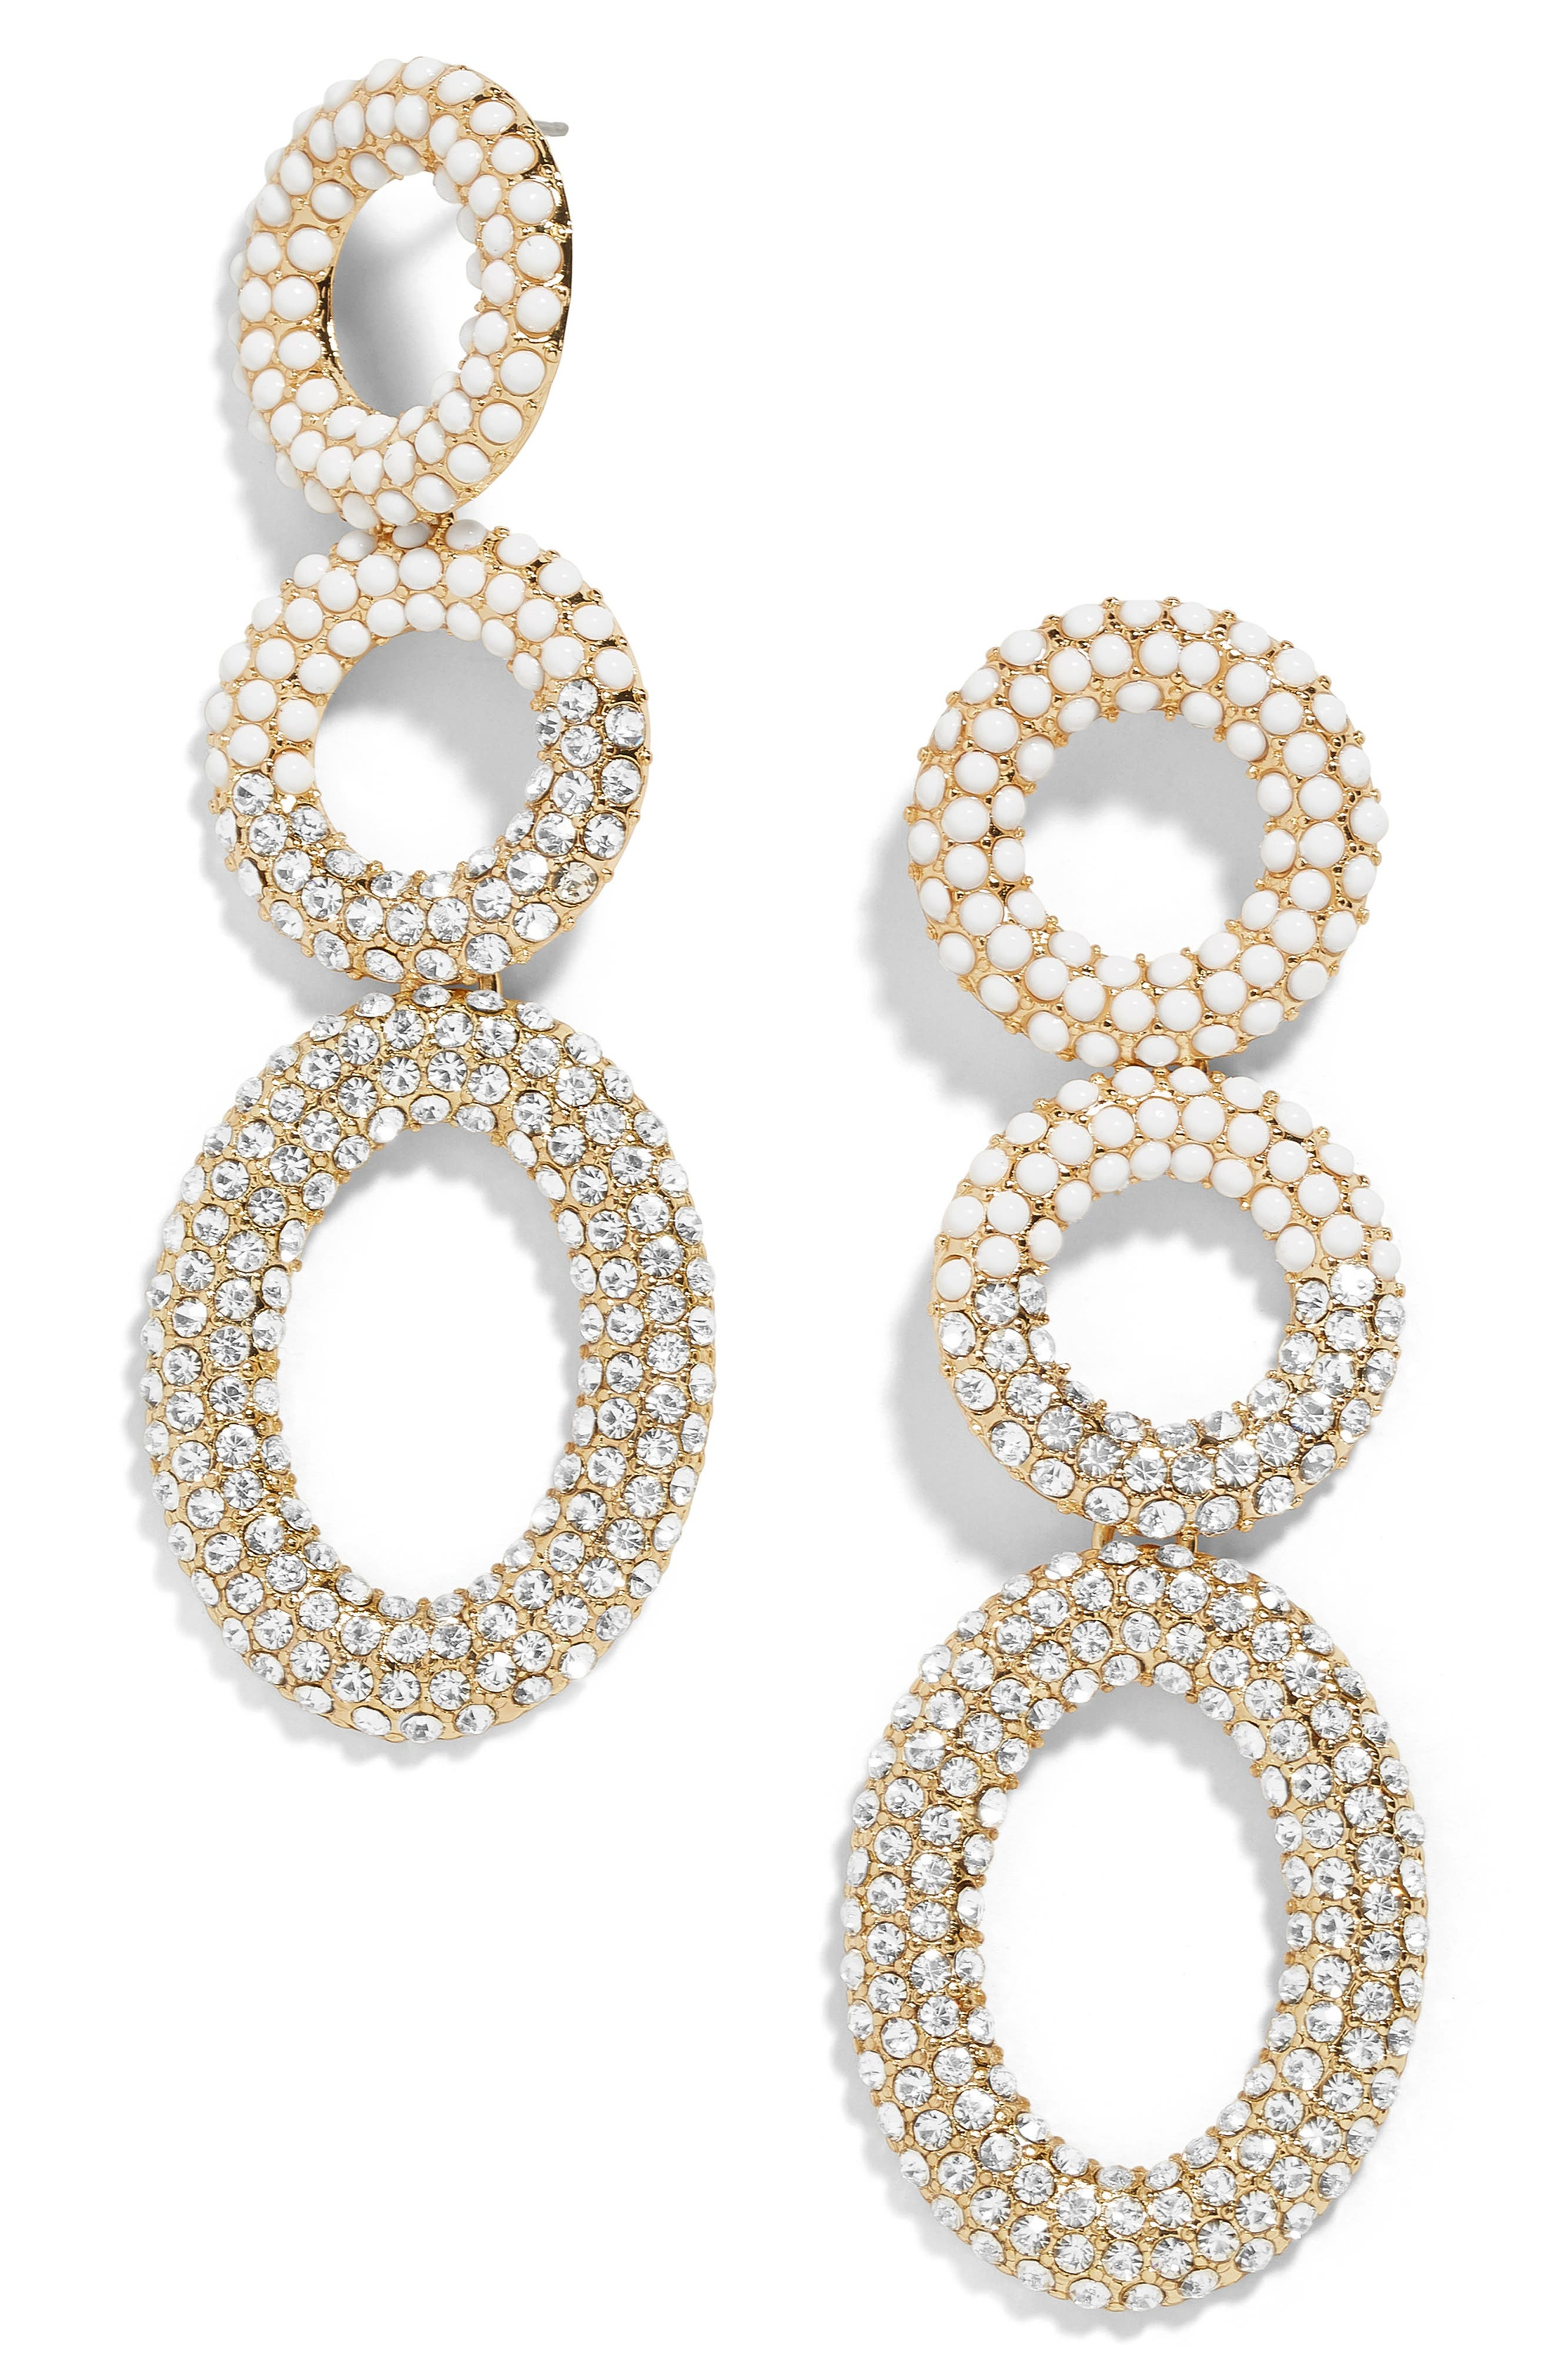 Mimi Tiered Drop Earrings,                             Main thumbnail 1, color,                             WHITE